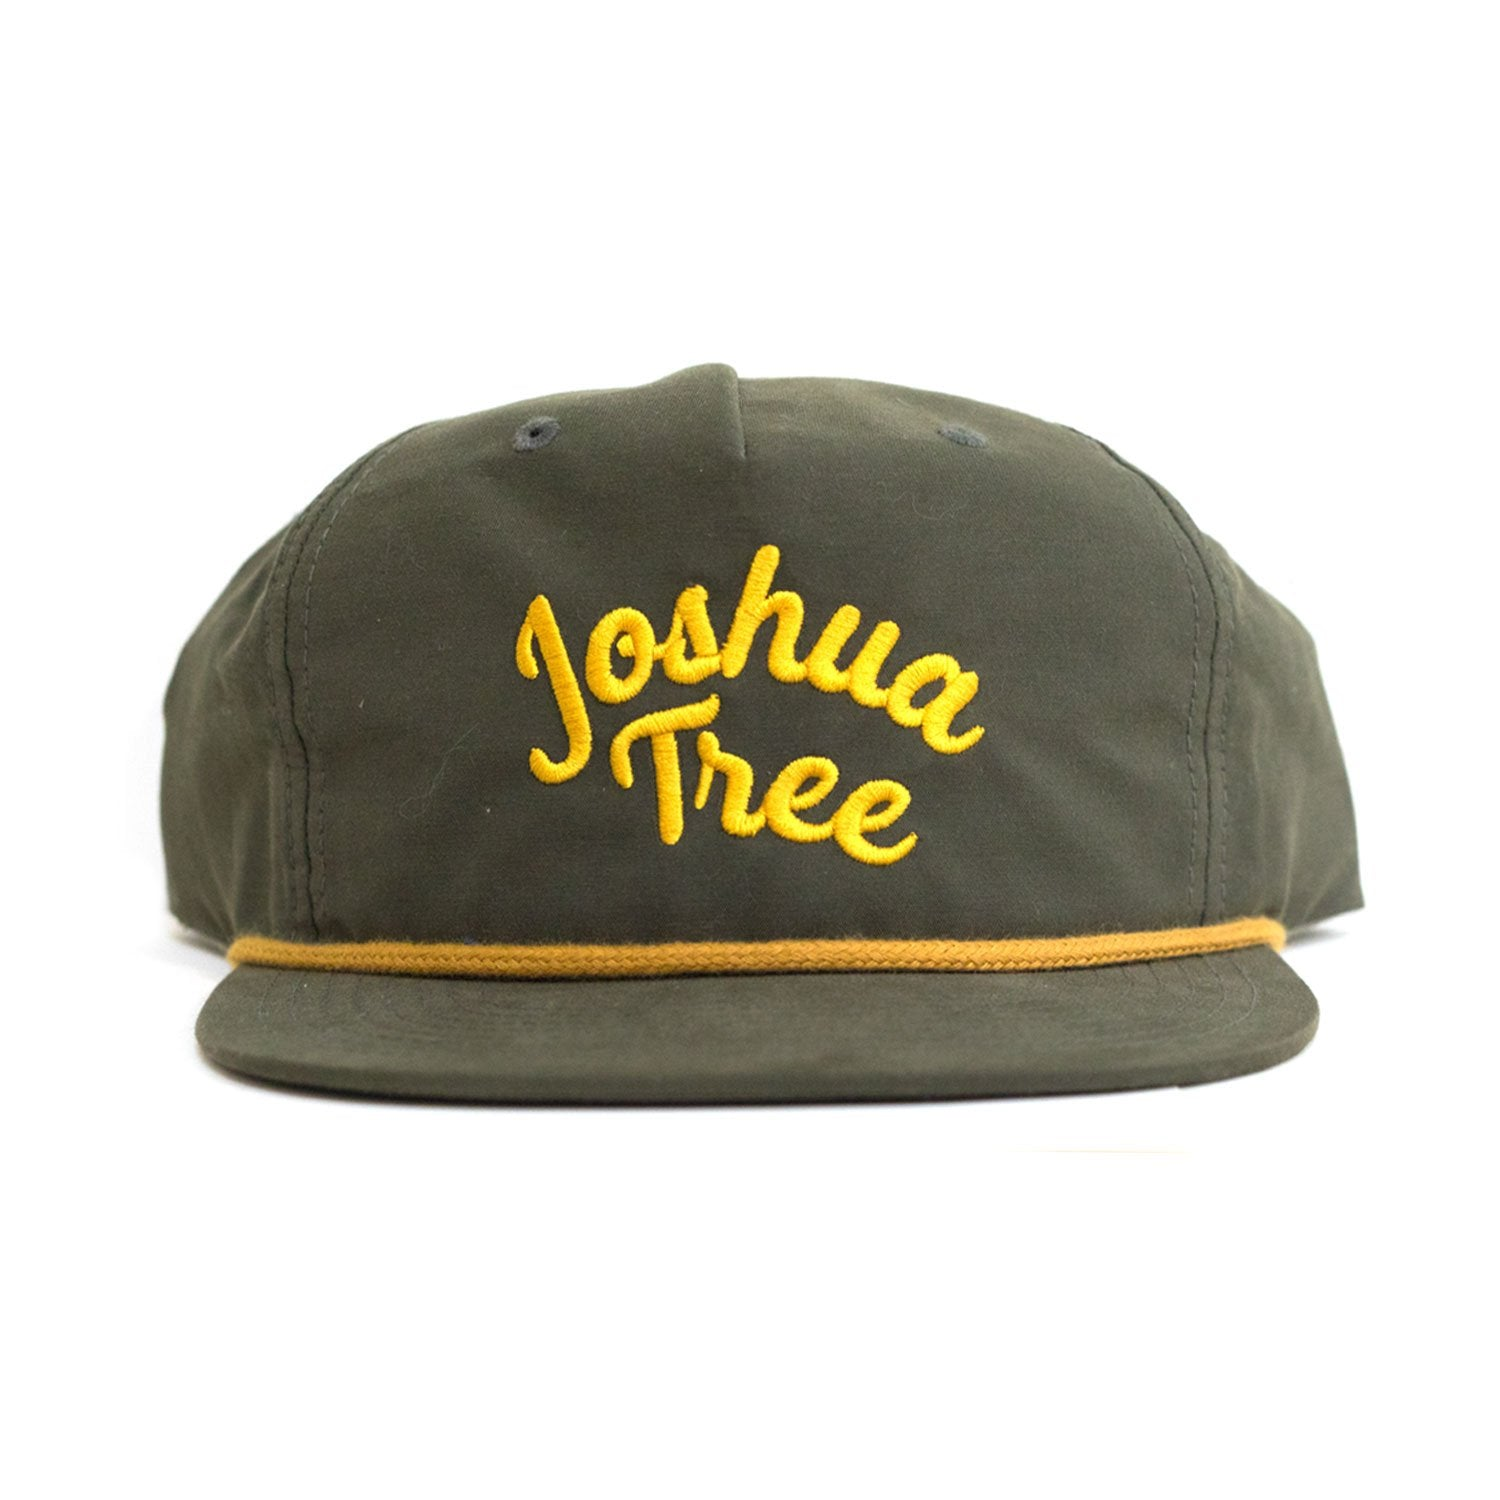 Joshua Tree Throwback Hat. Quick View cd434fde79a